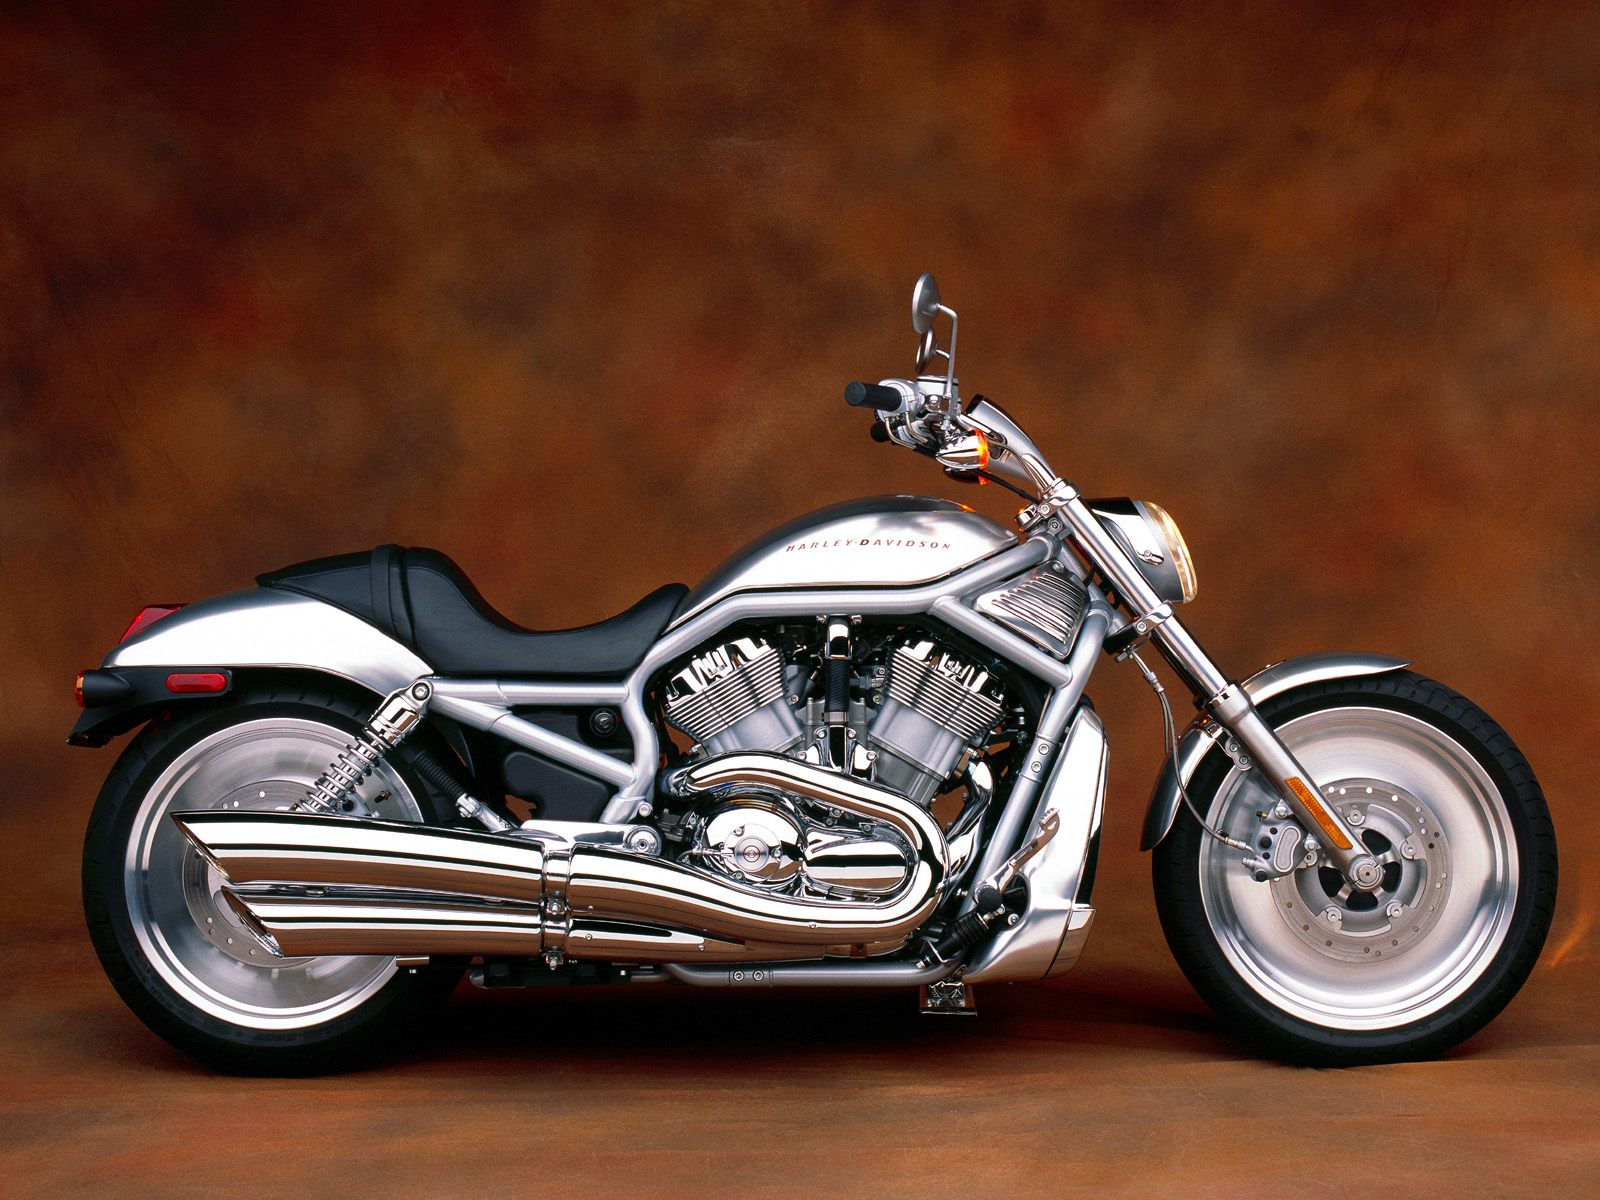 Harley Davidson V Rod HD dekstop wallpapers   2002 Harley Davidson 1600x1200